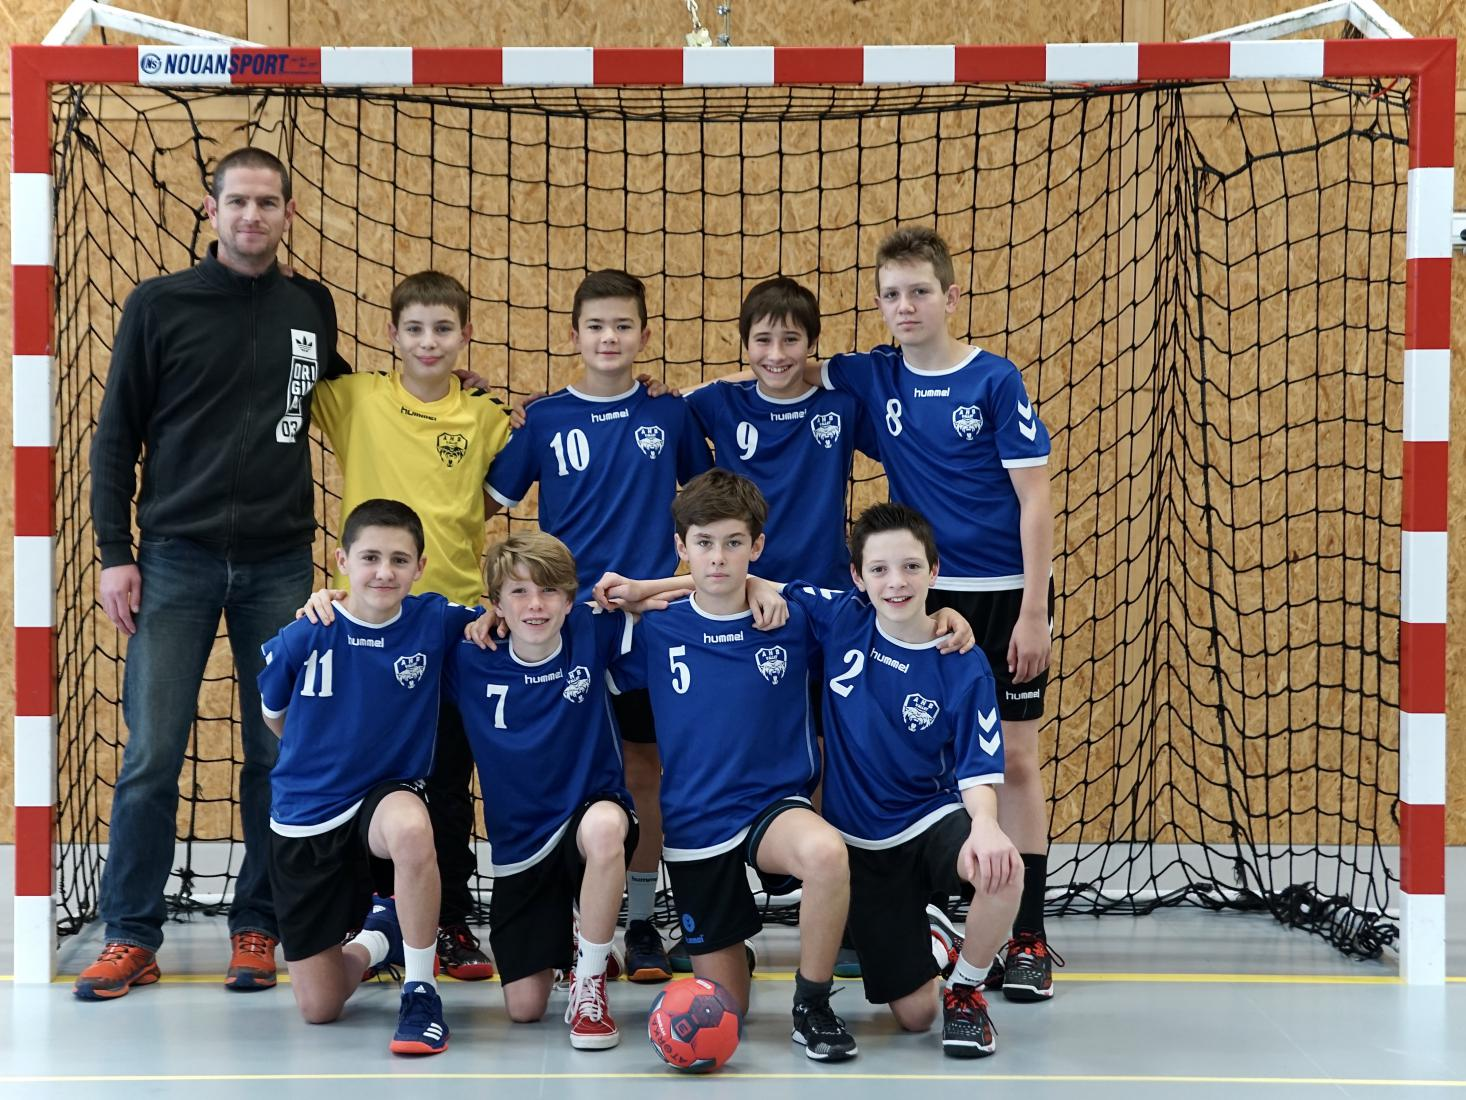 VALLET -14 M - Association Handball Vallet